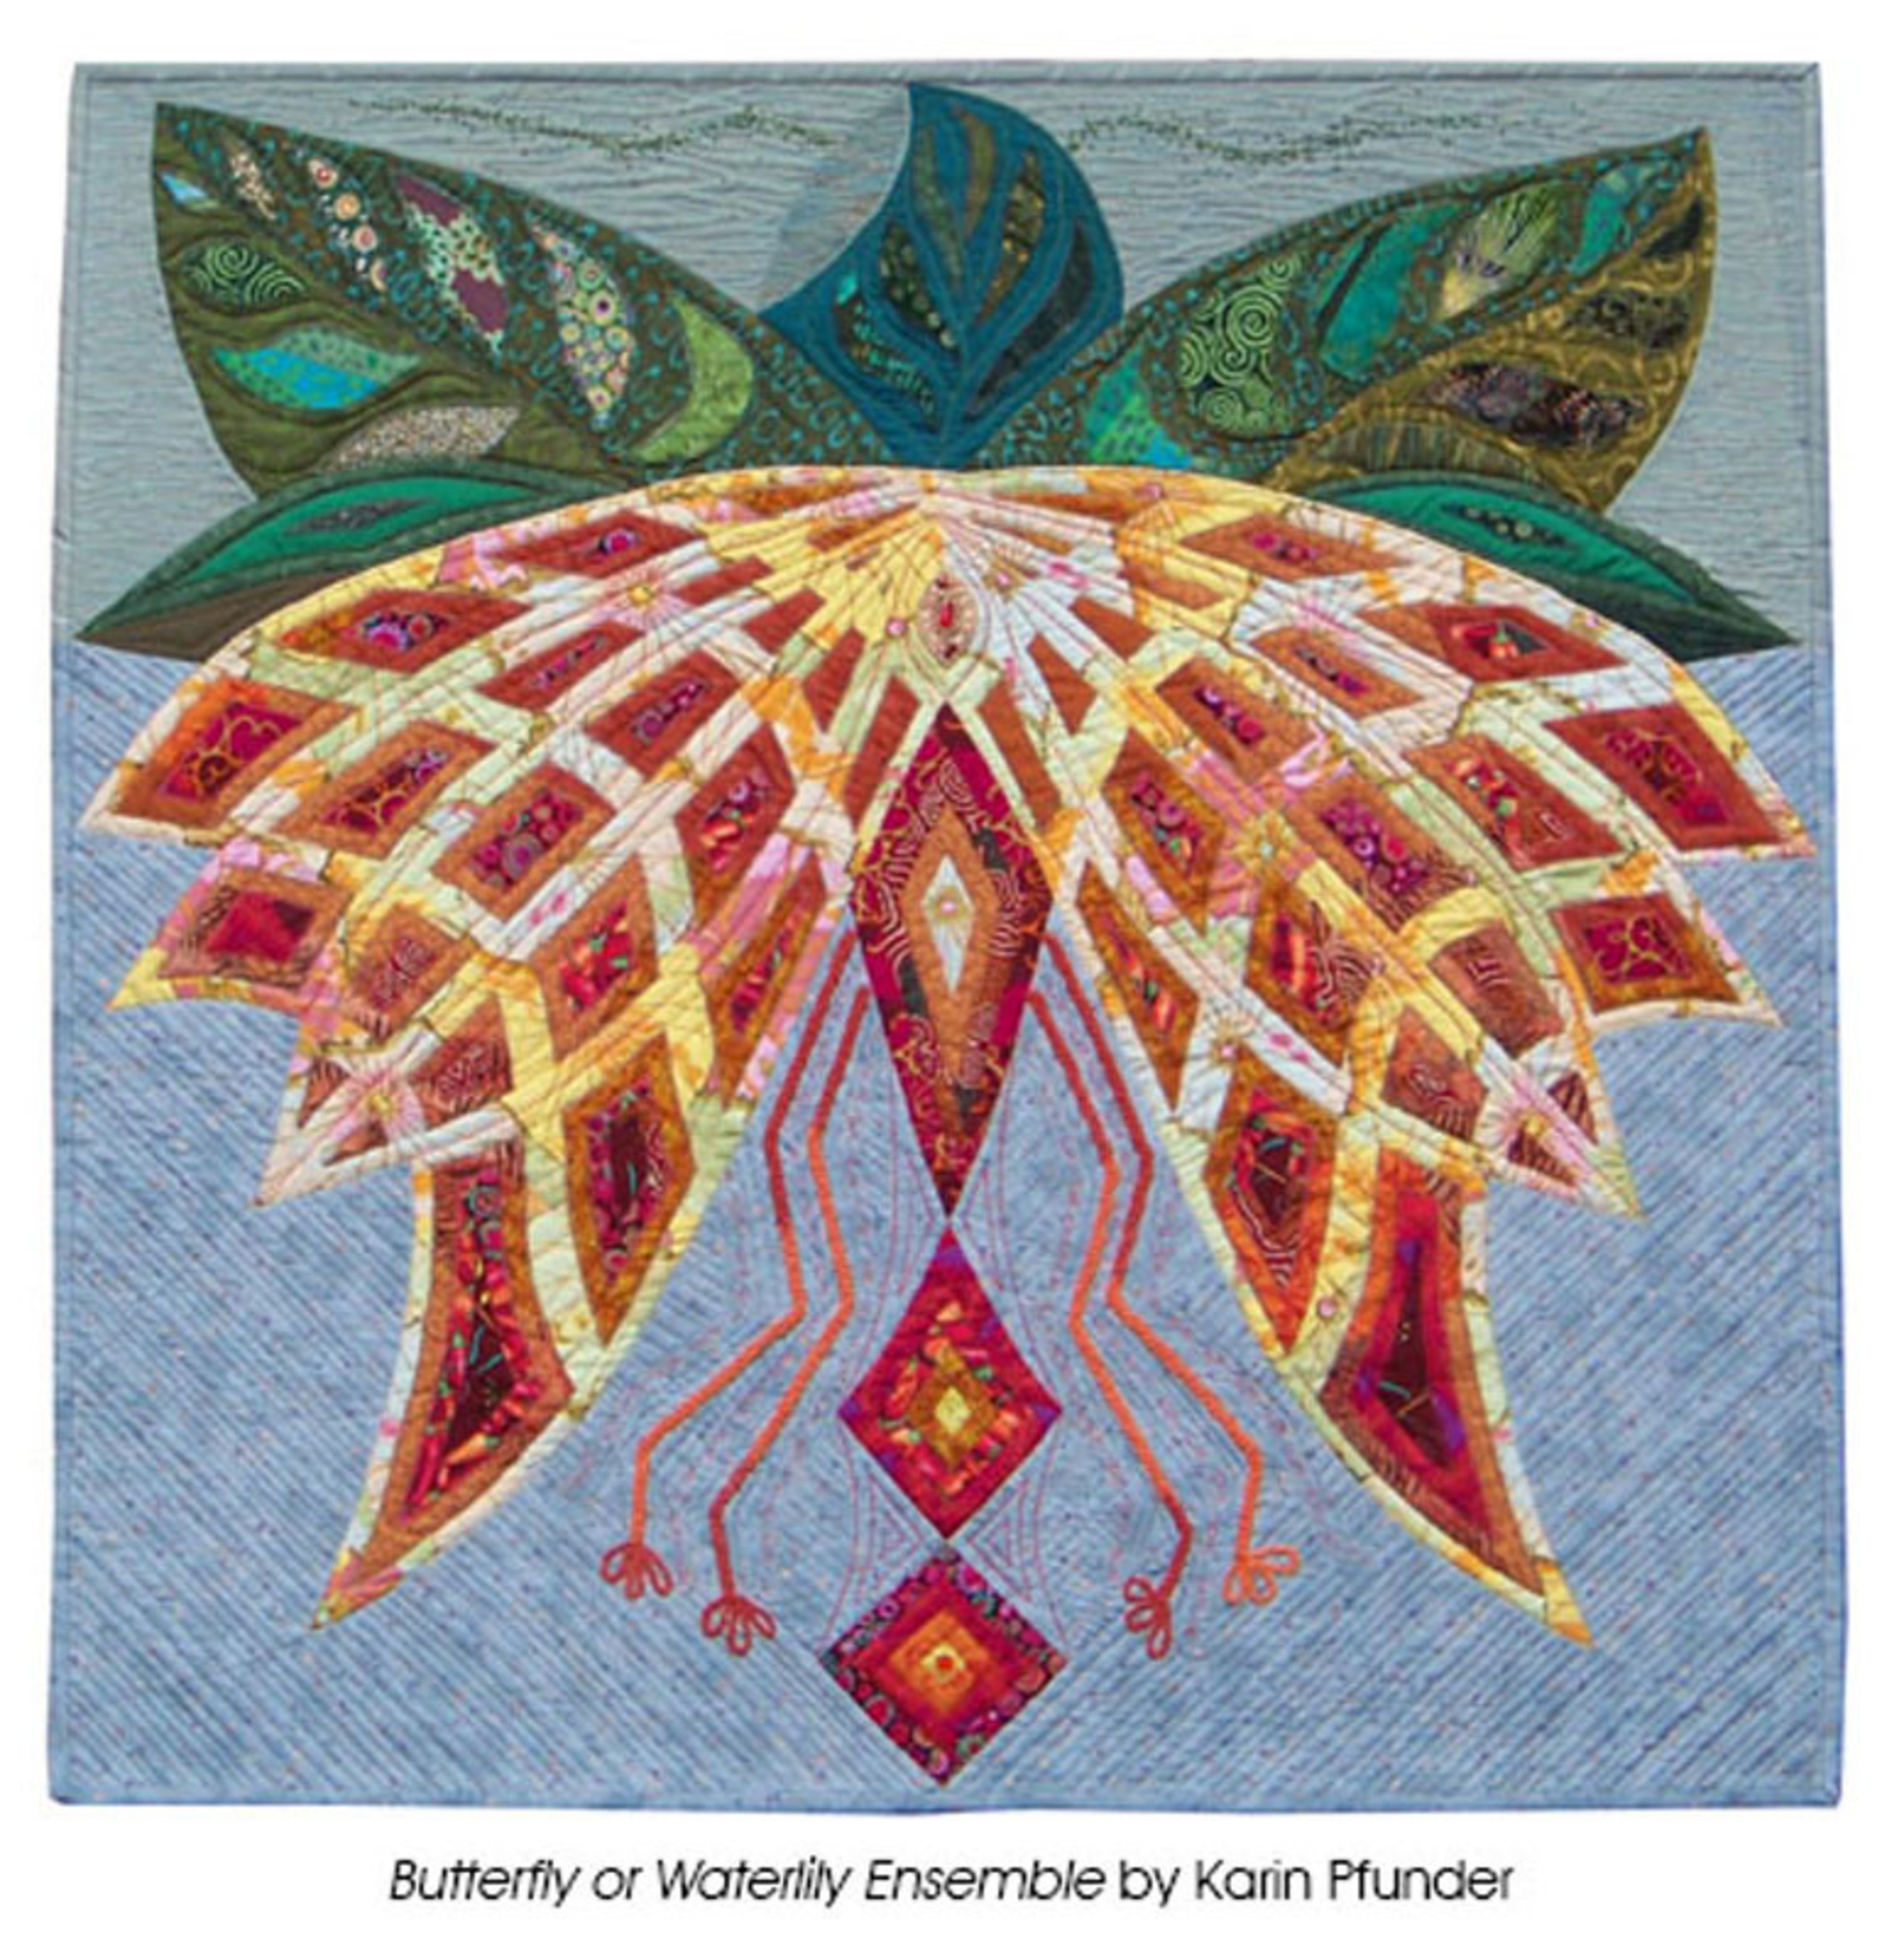 Butterfly or Waterlily Ensemble by Karin Pfunder. (PRNewsFoto/National Quilt Museum)